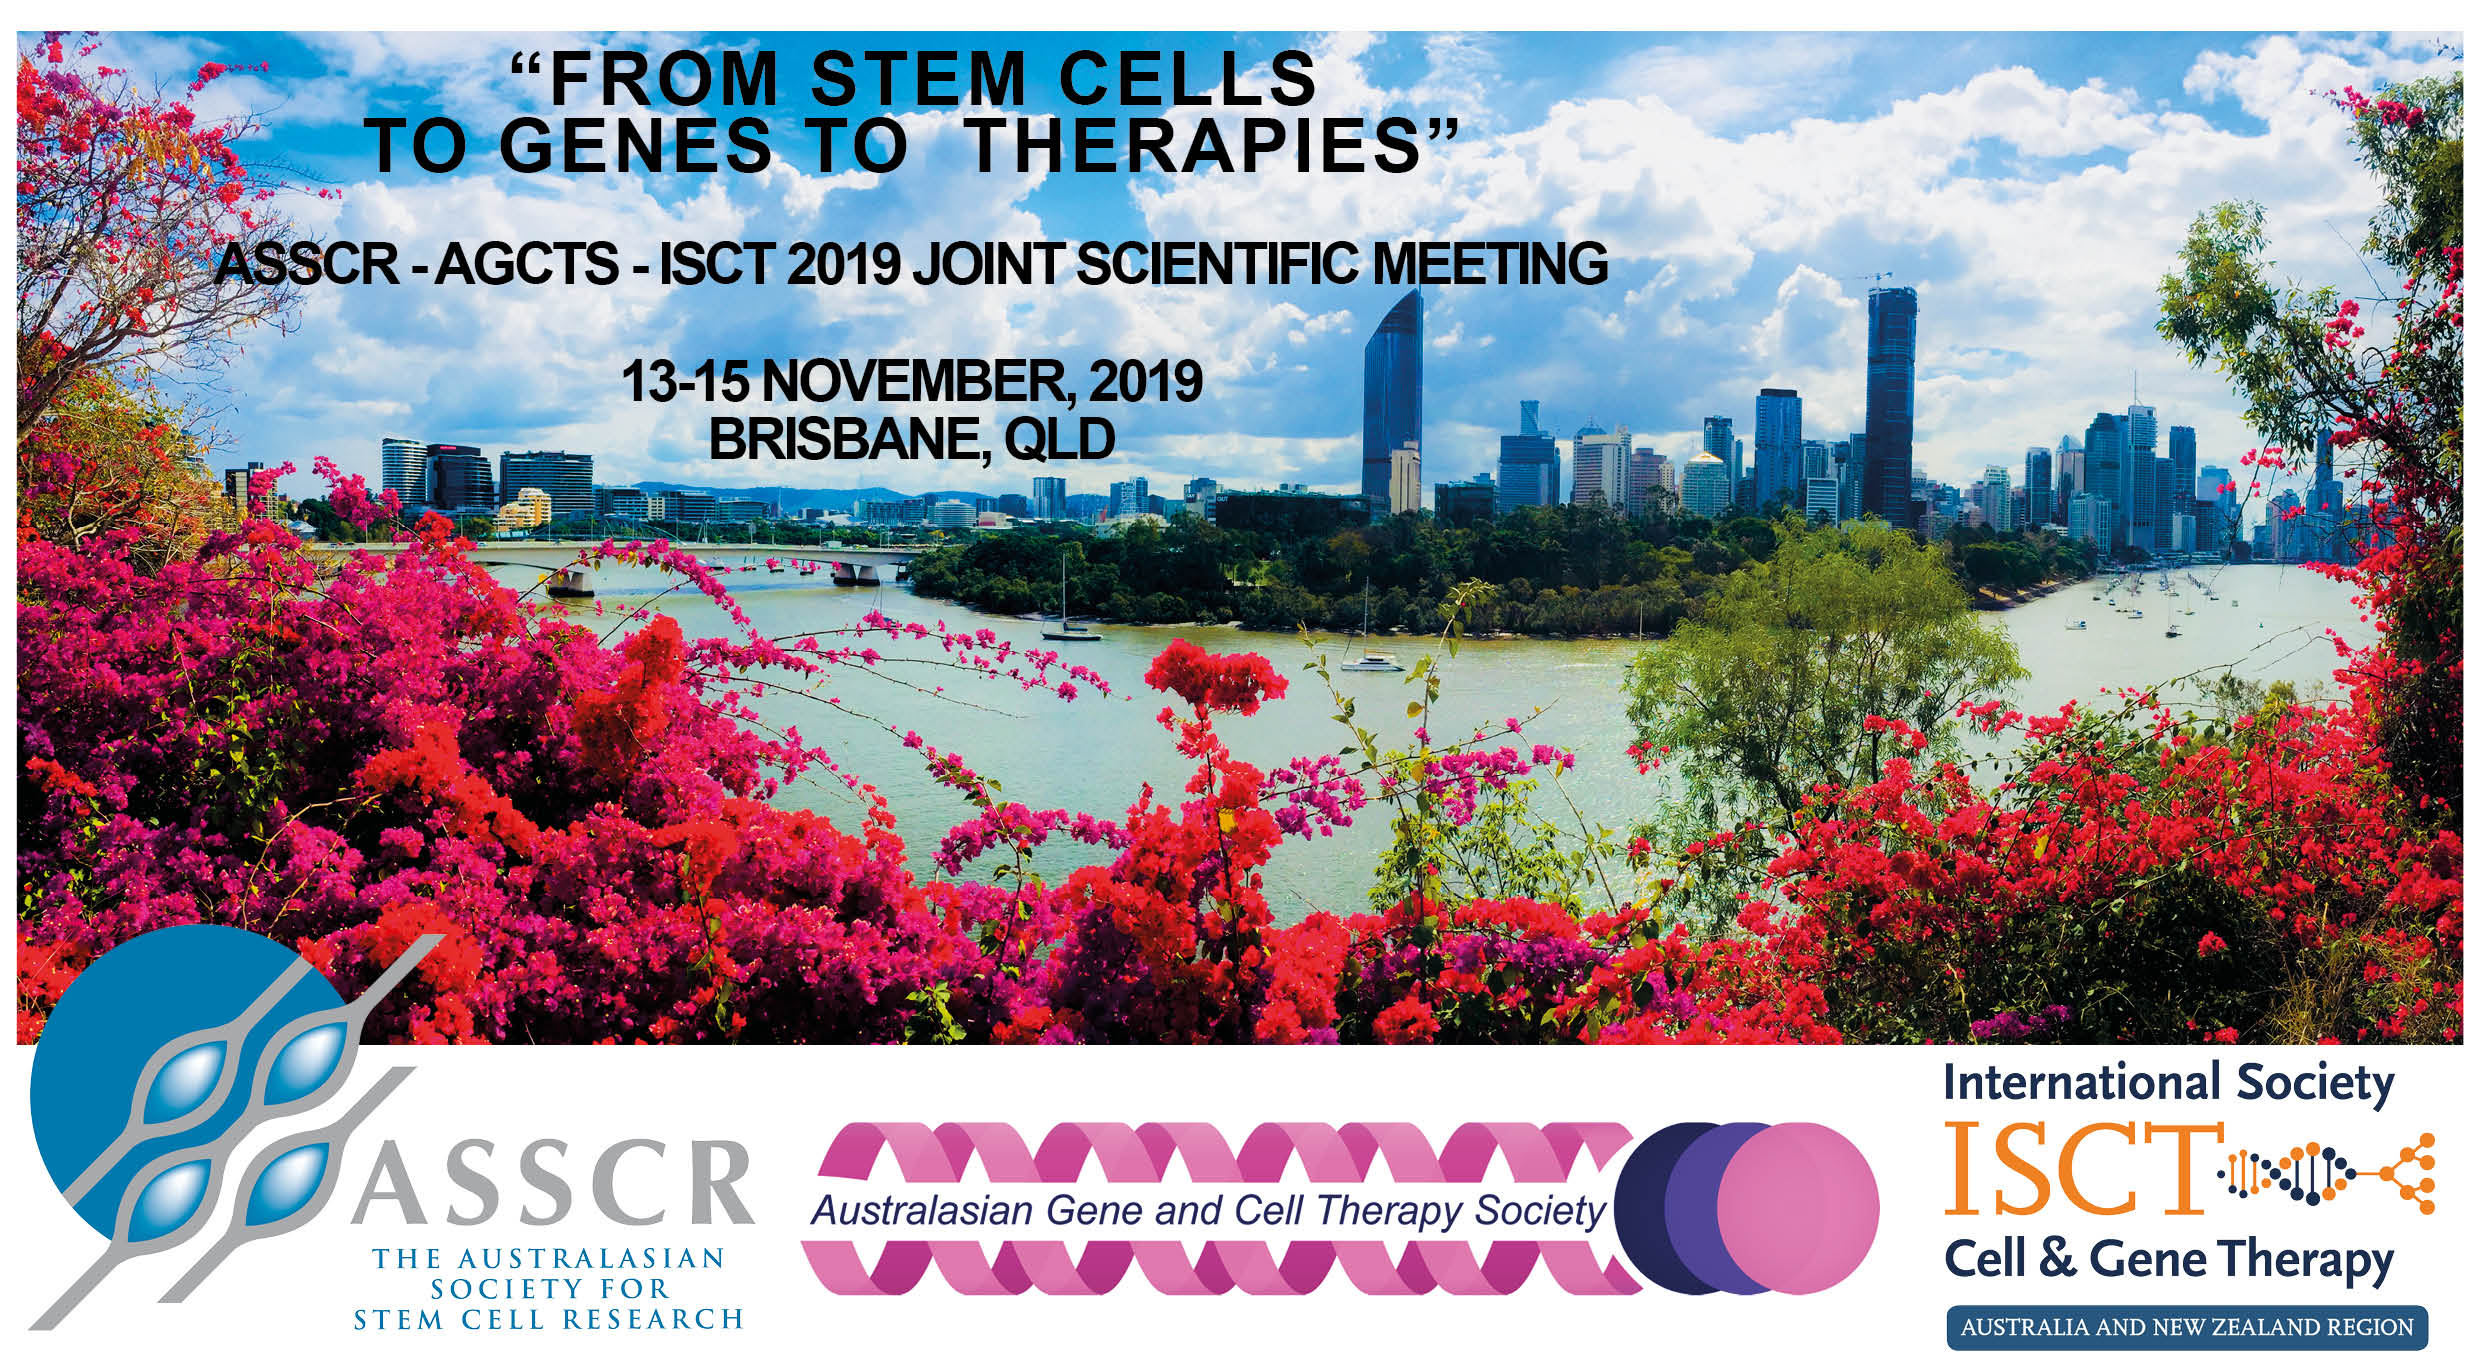 ASSCR-AGCTS-ISCT 2019 JOINT SCIENTIFIC MEETING